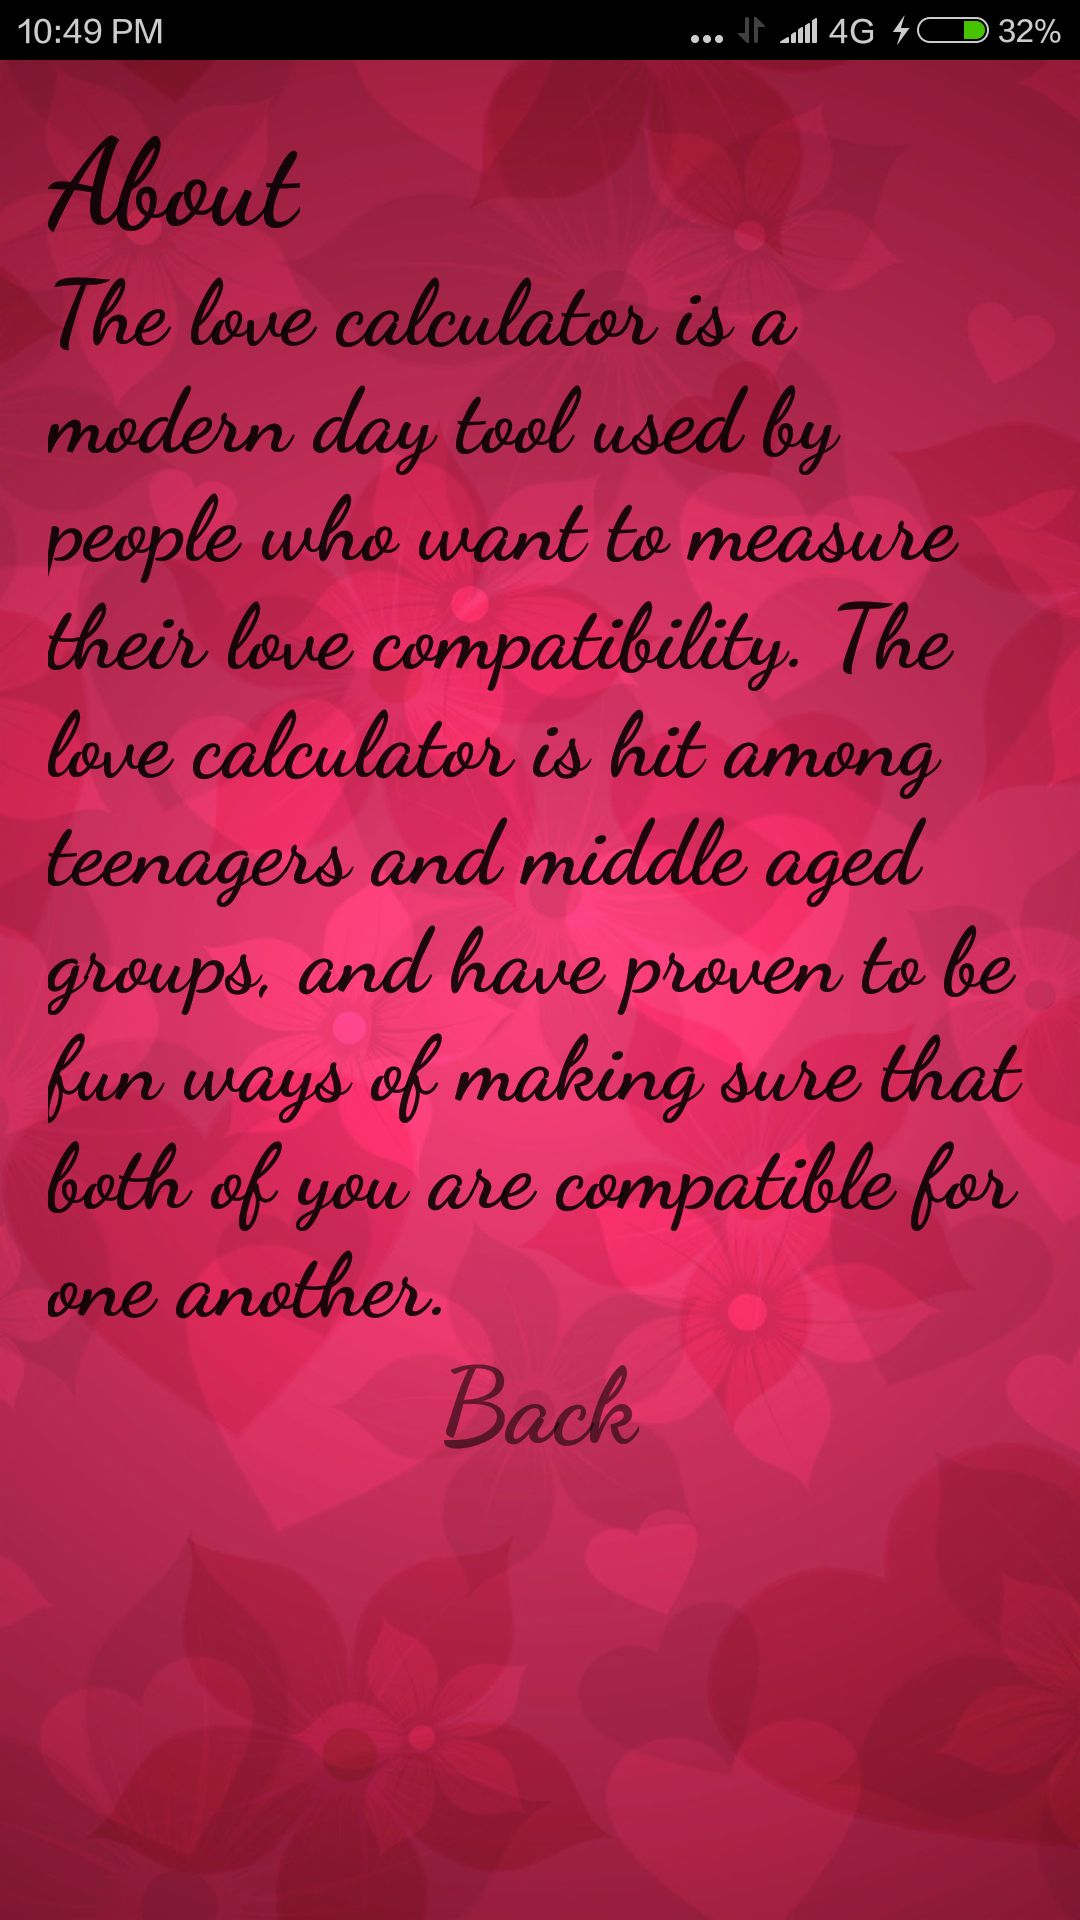 Uncategorized Thelovecalculator love calculator android app source code miscellaneous screenshot 2